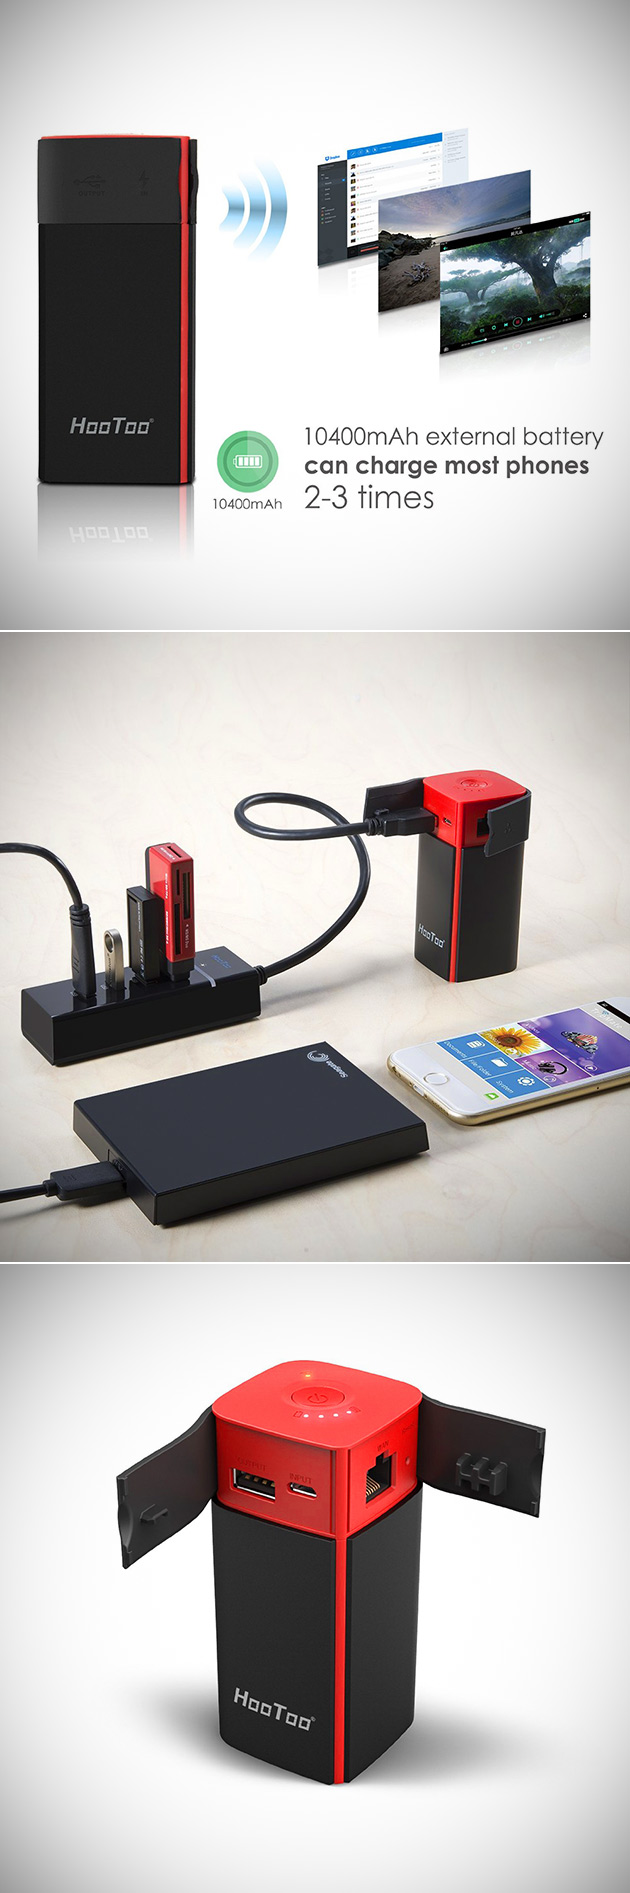 HooToo Travel Router Power Bank